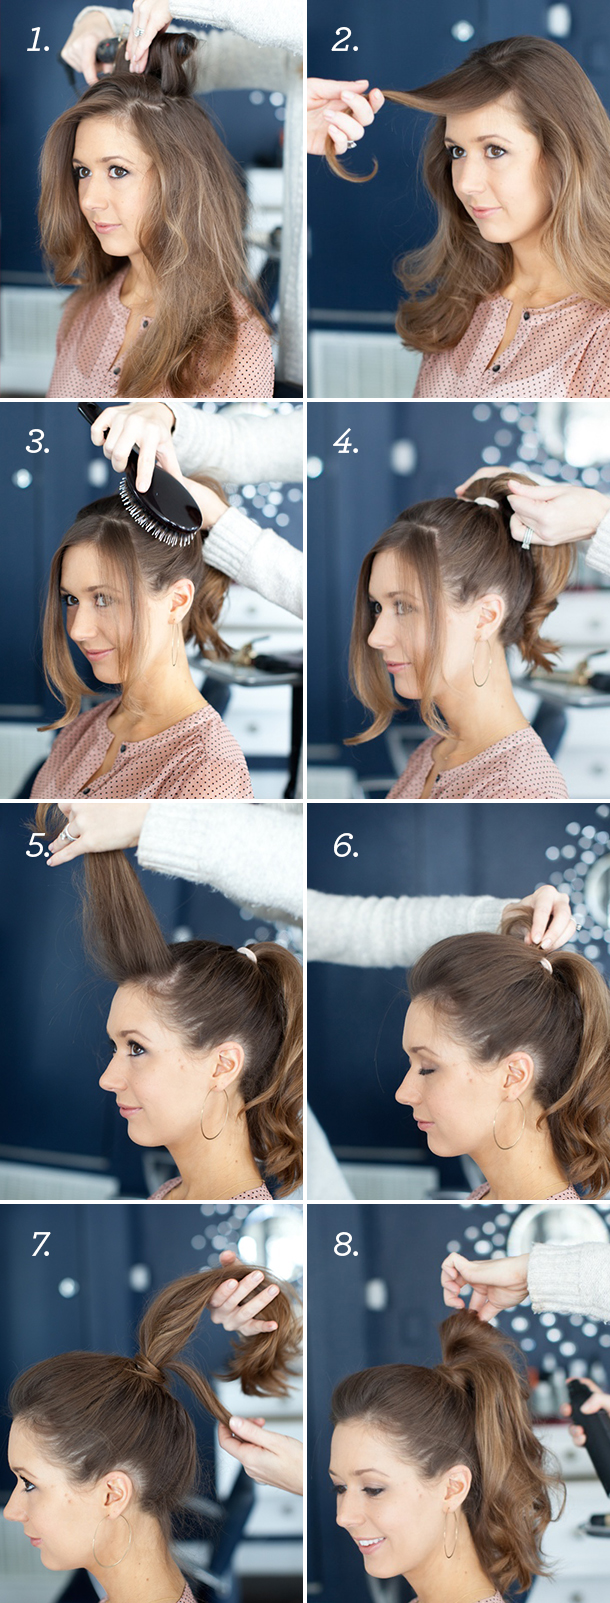 High Pony Tutorial with Martha Lynn Kale | Photos by Kate Stafford for Camille Styles